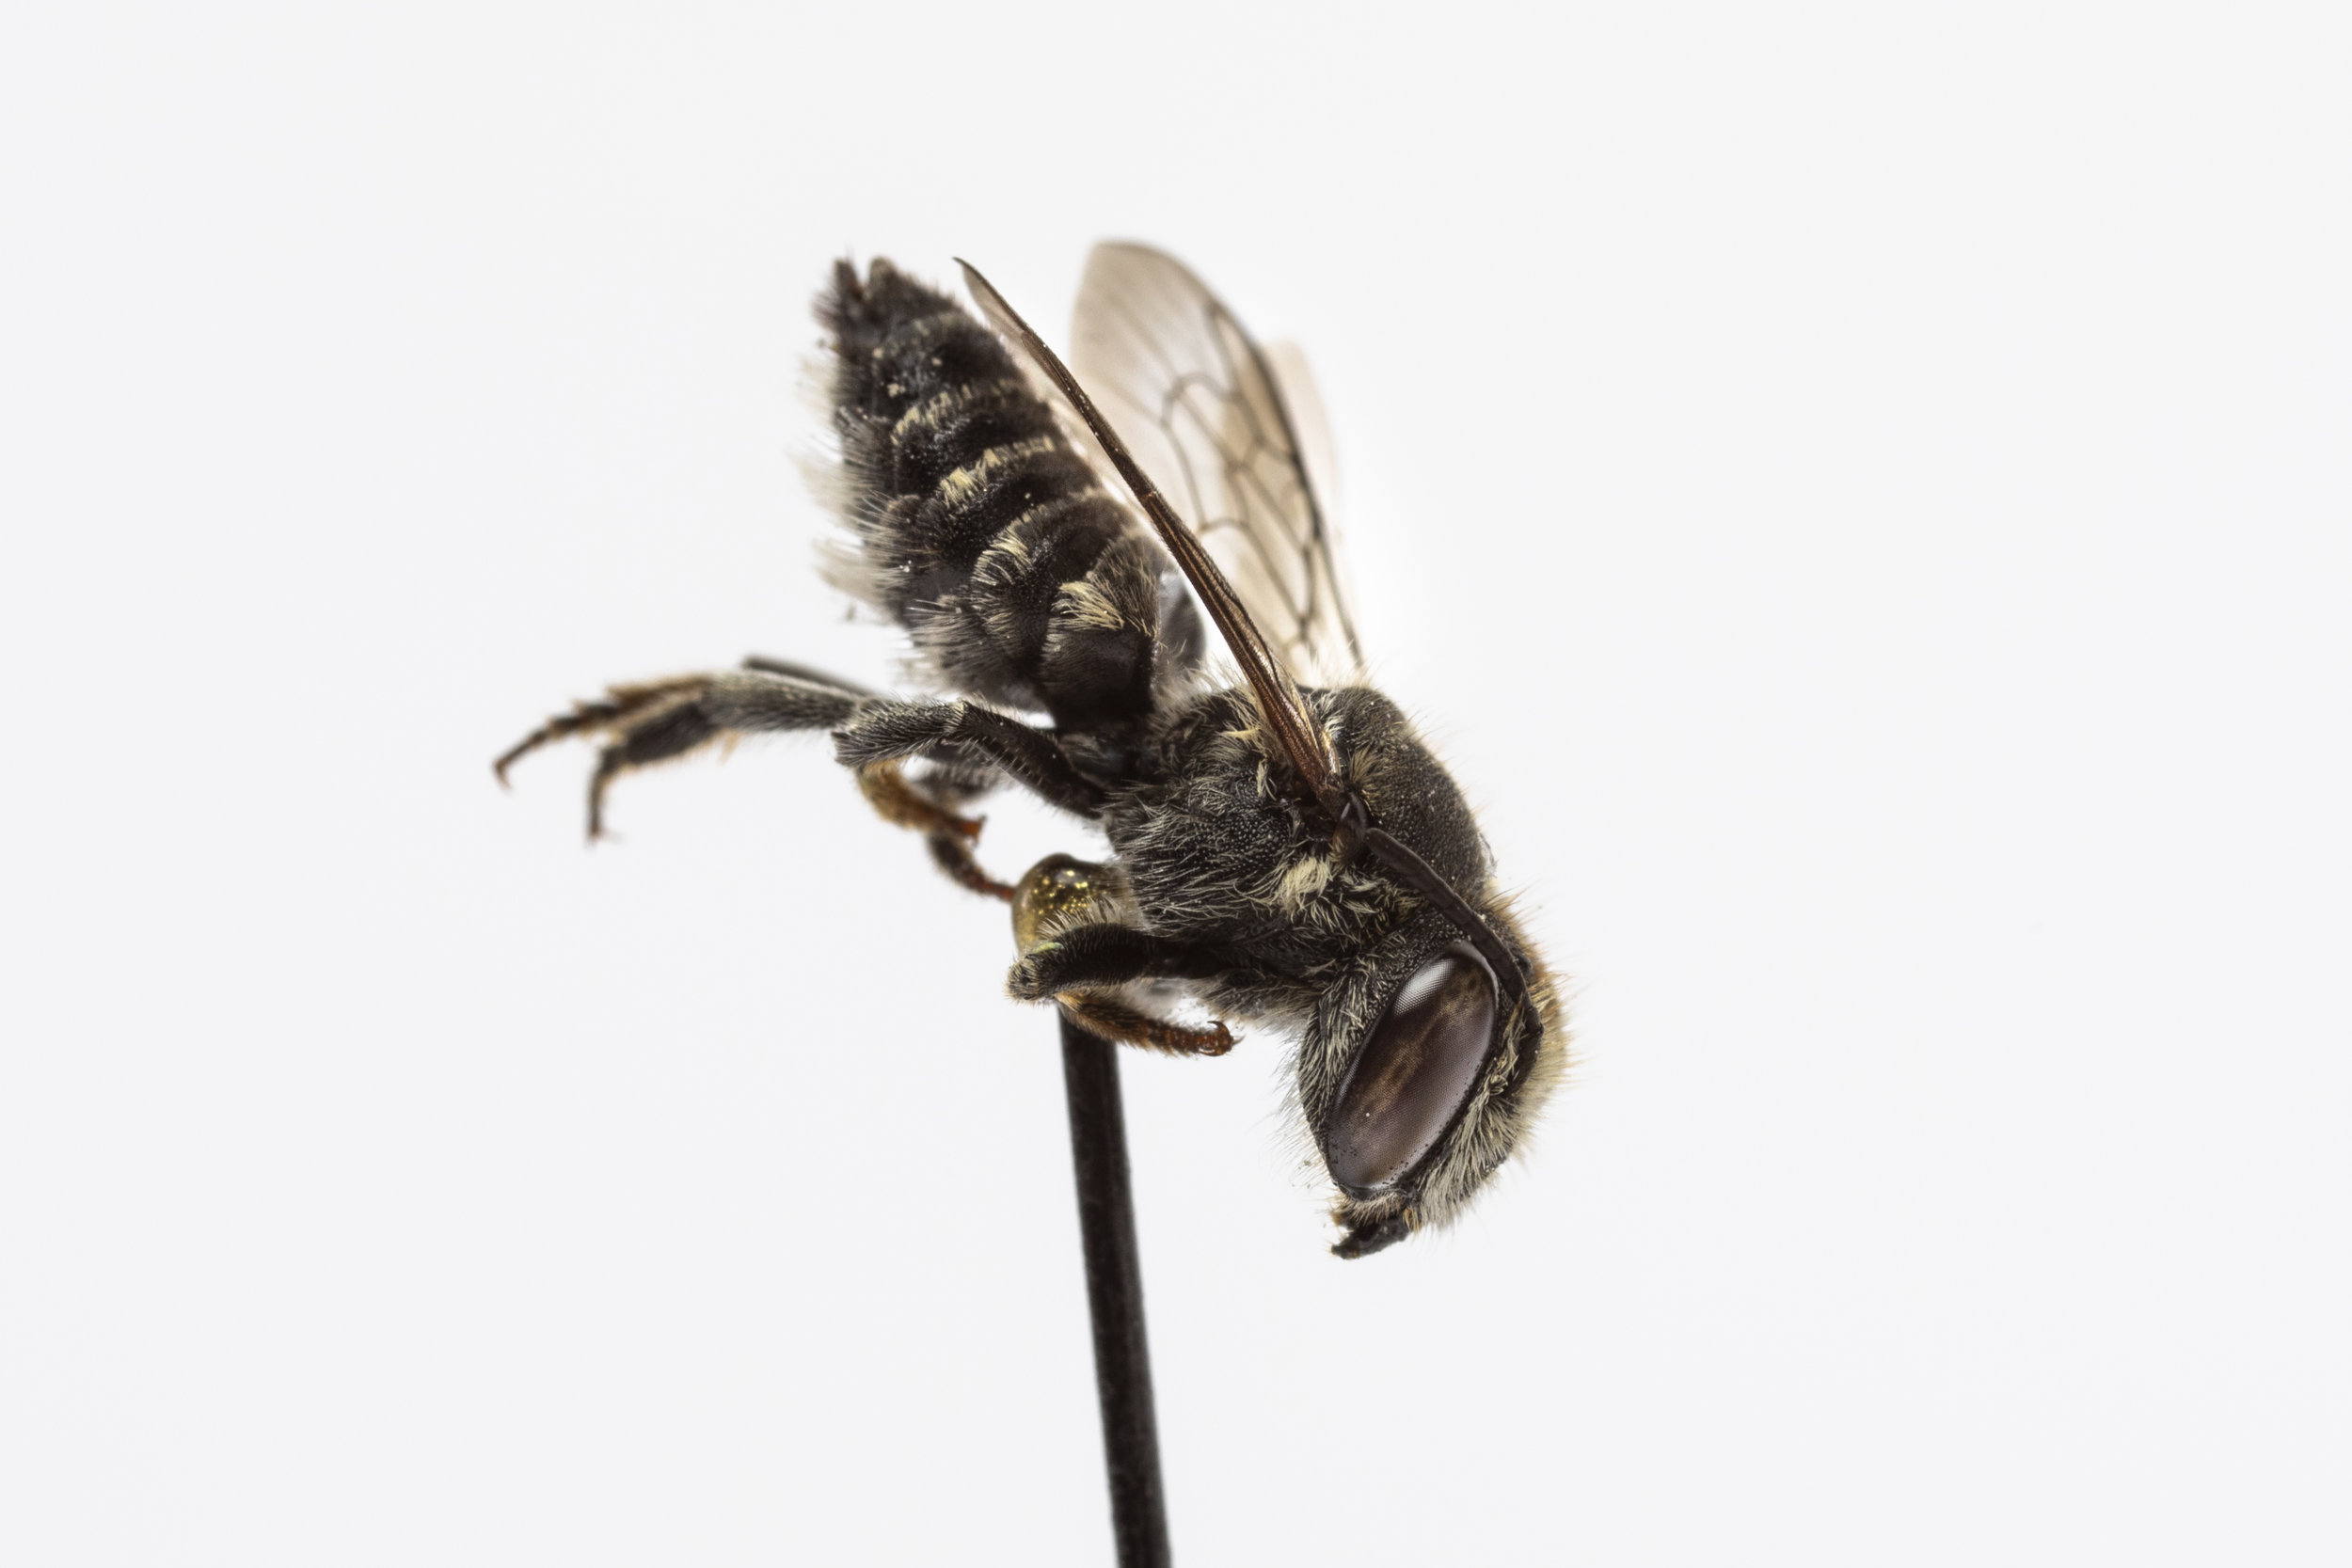 Leaf-cutter bee (Megachile sp.)